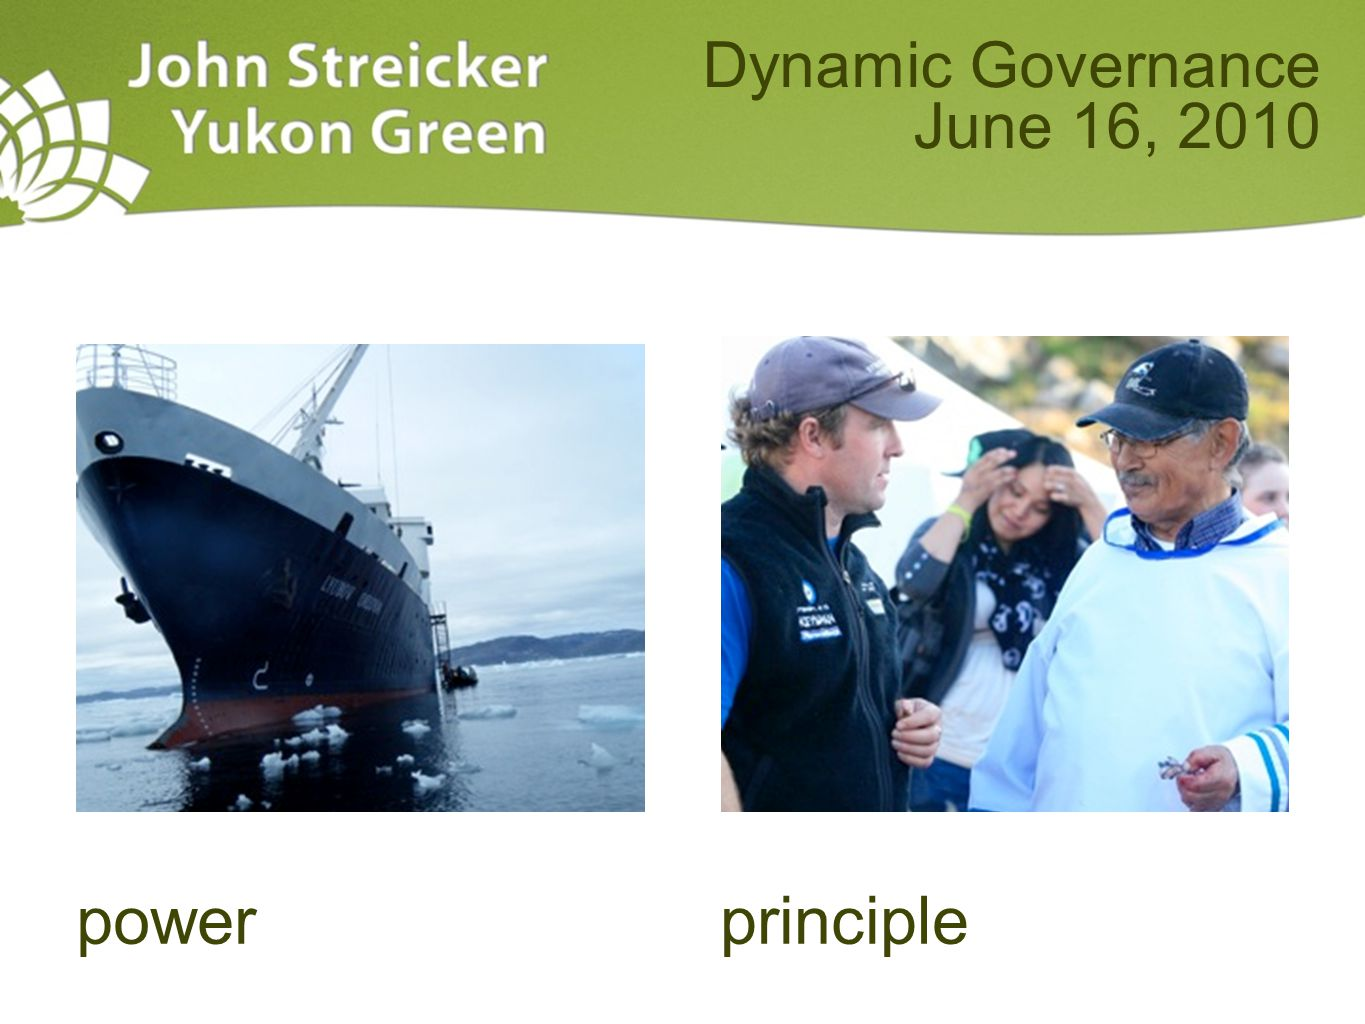 powerprinciple Dynamic Governance June 16, 2010